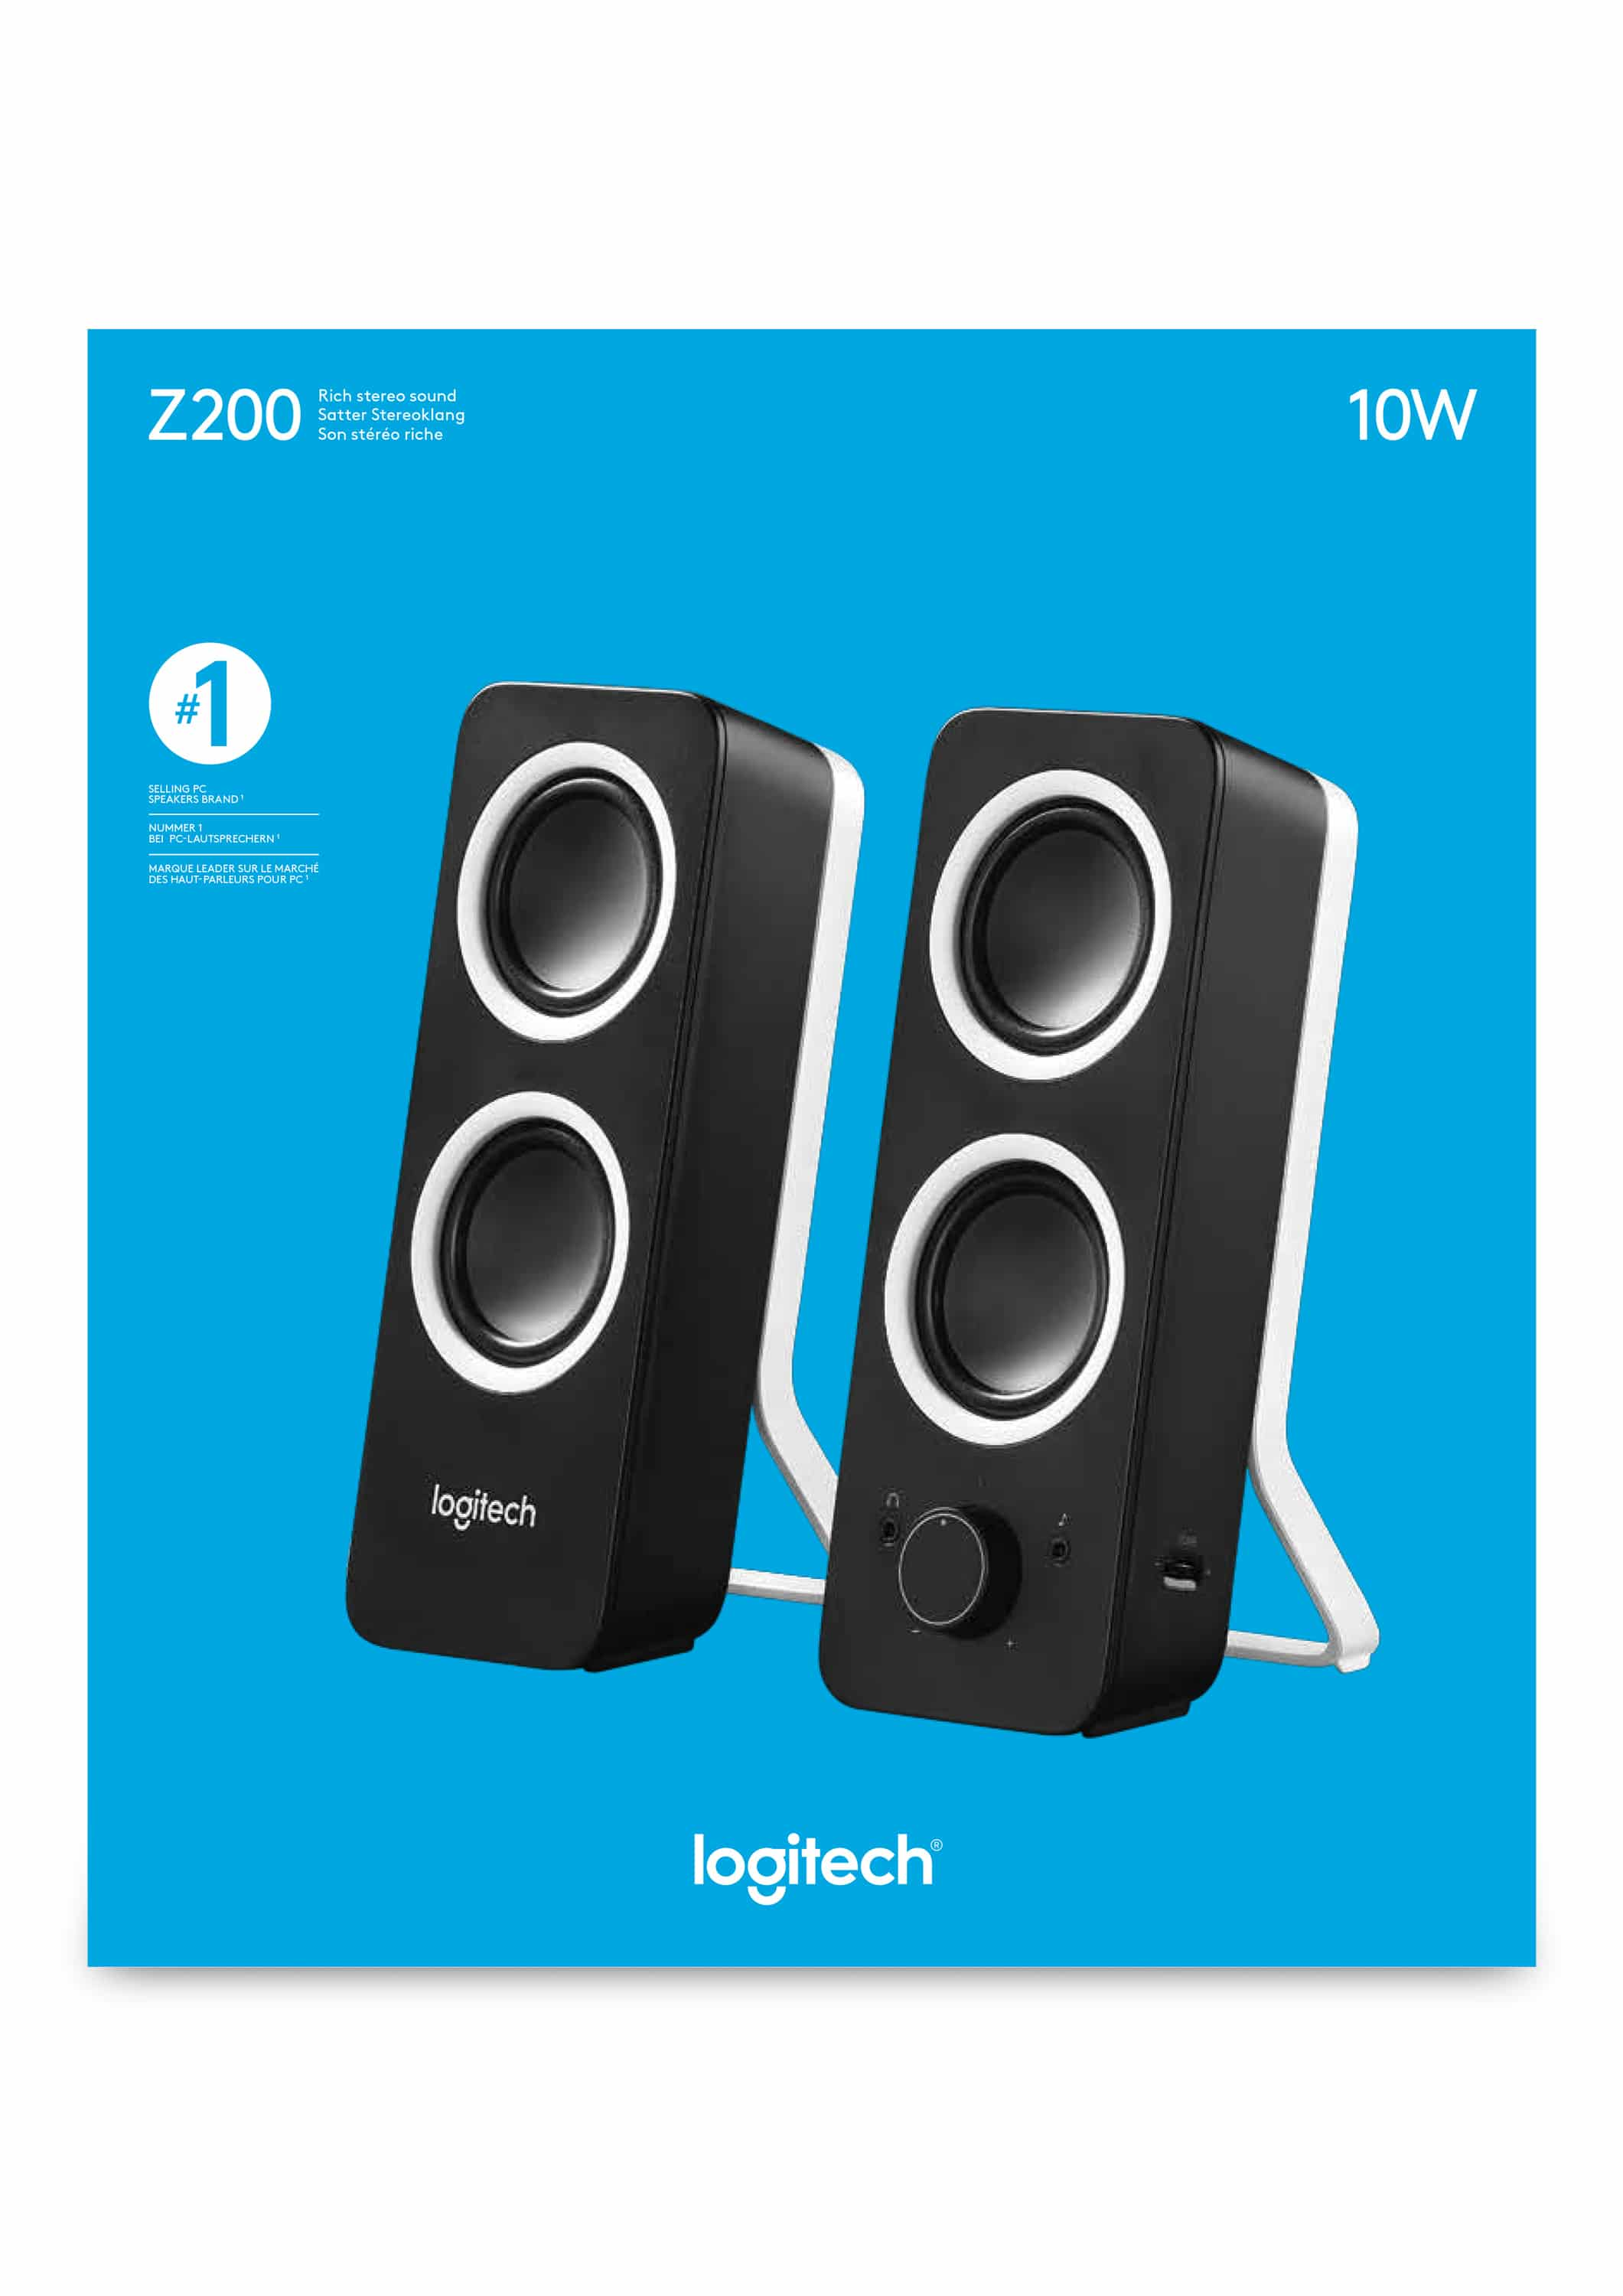 Logitech Z200 Lautsprecher Zwei 63cm Von Expert Technomarkt Z120 Usb Stereo Speaker For Laptop Notebook Pc Pro Satellit